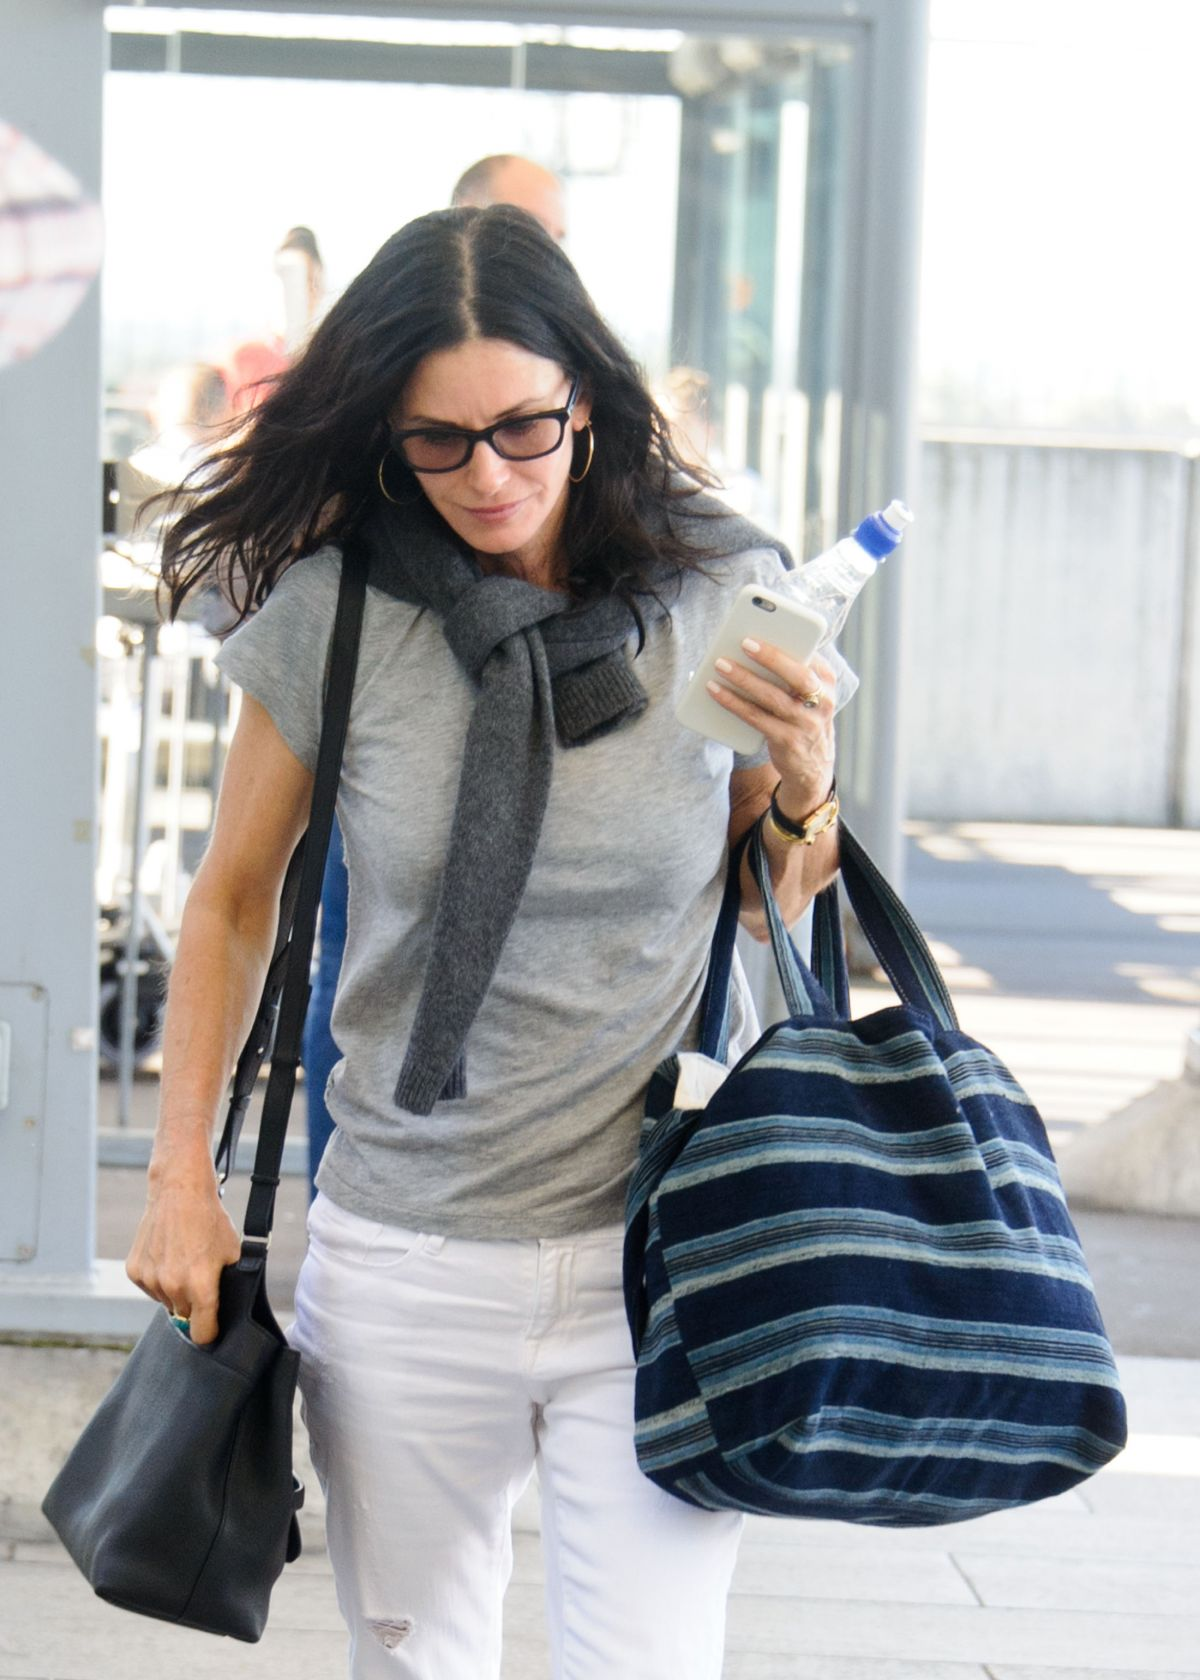 COURTENEY COX at Heathrow Airport in London 08/06/2016